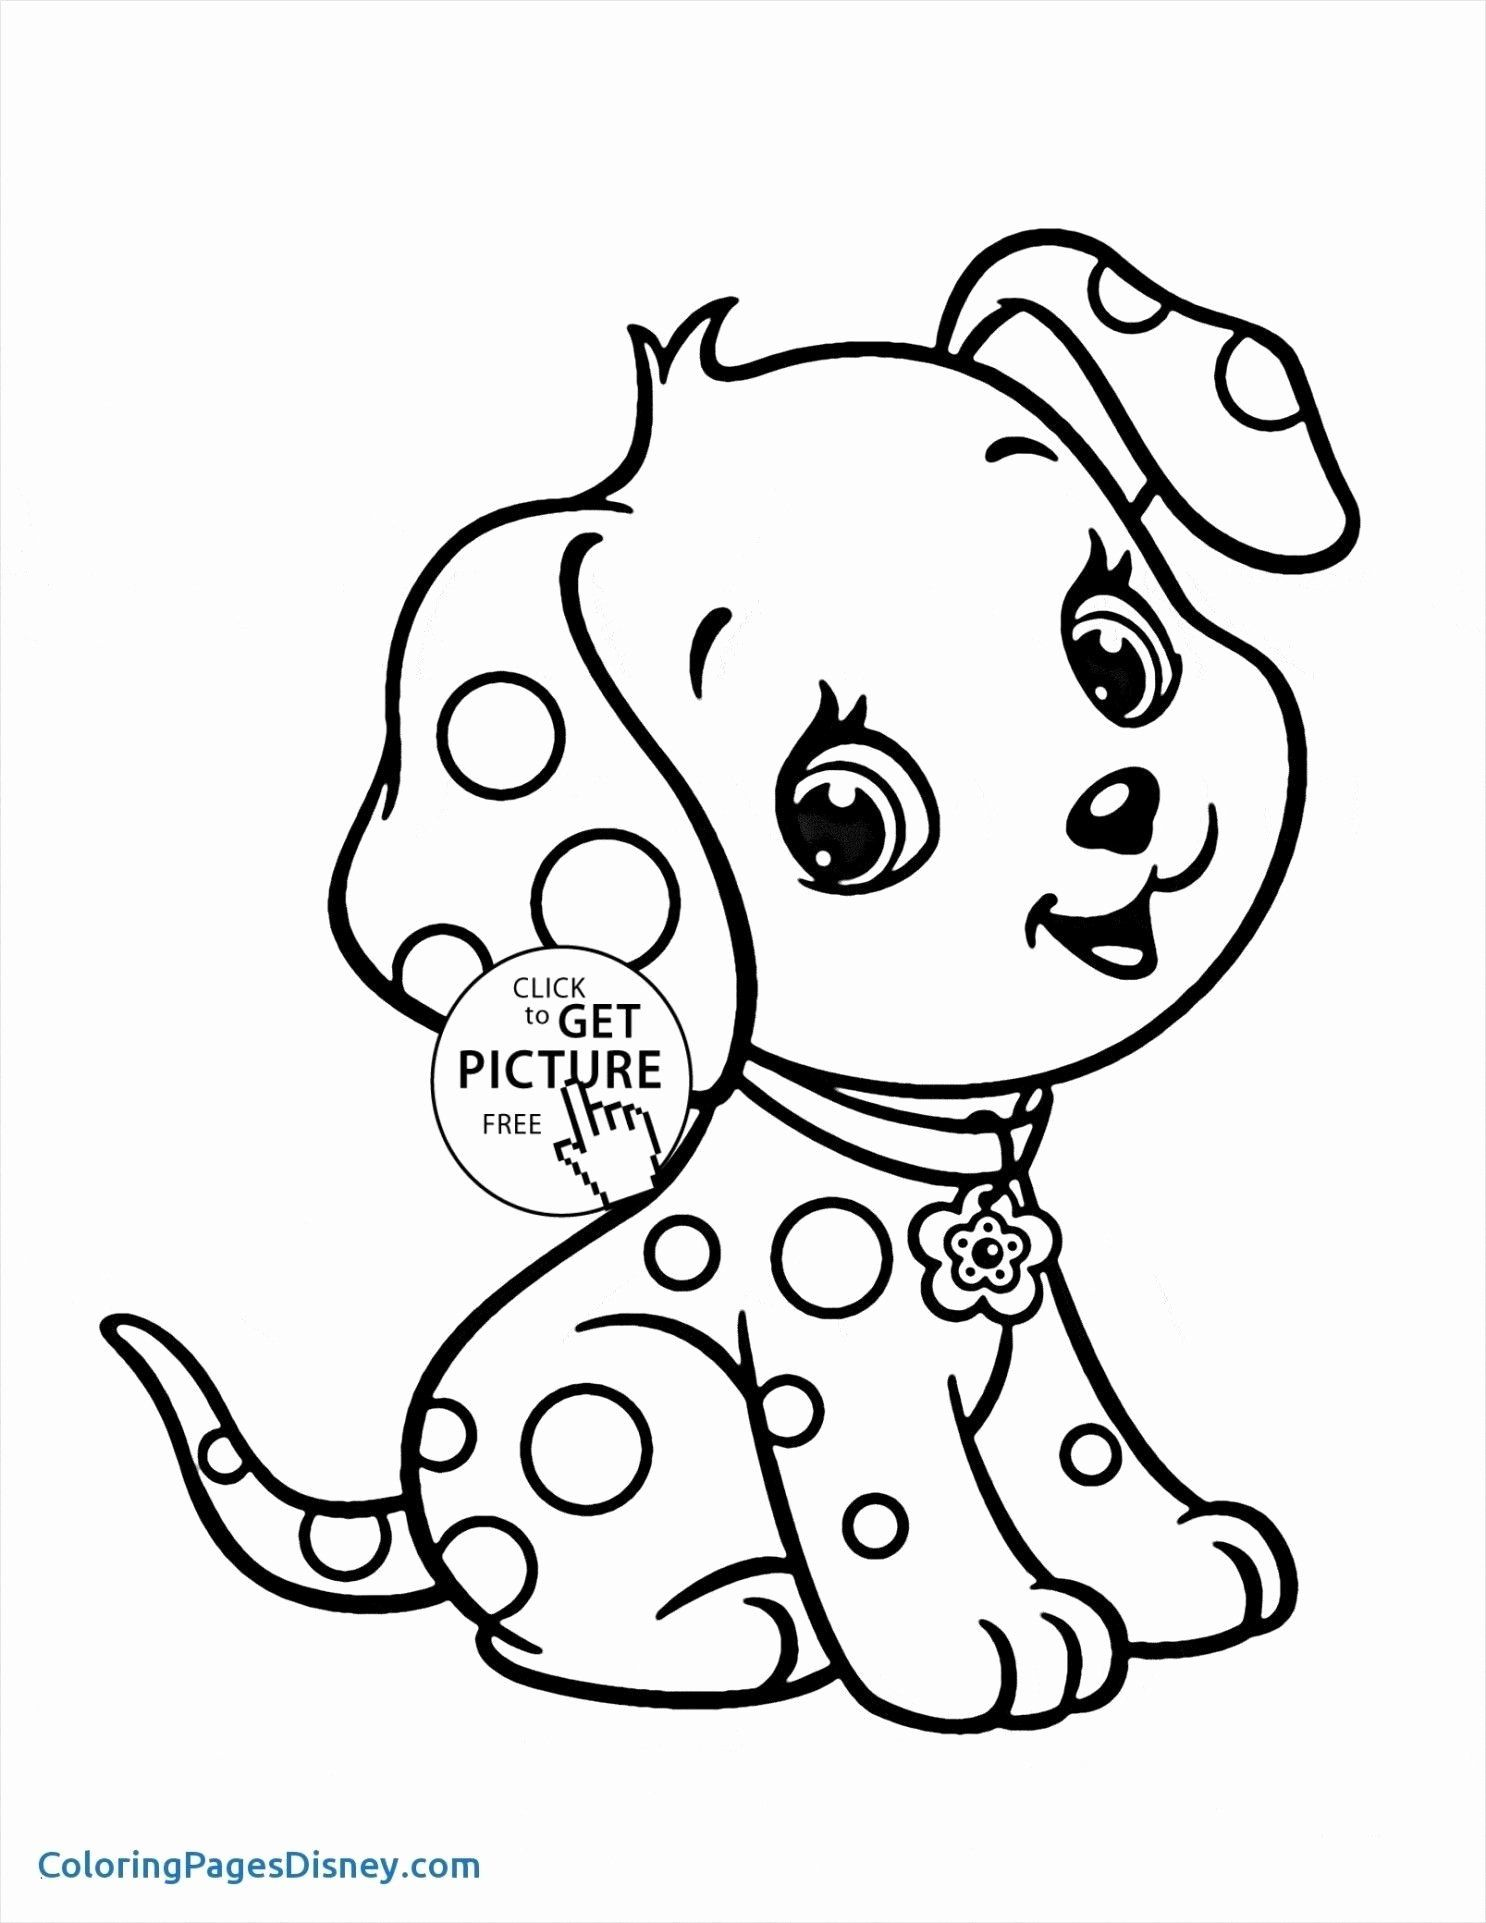 Chinese Flag Coloring Page Printable Elegant Startearlyrun Princess Coloring Pages Unicorn Coloring Pages Disney Princess Coloring Pages